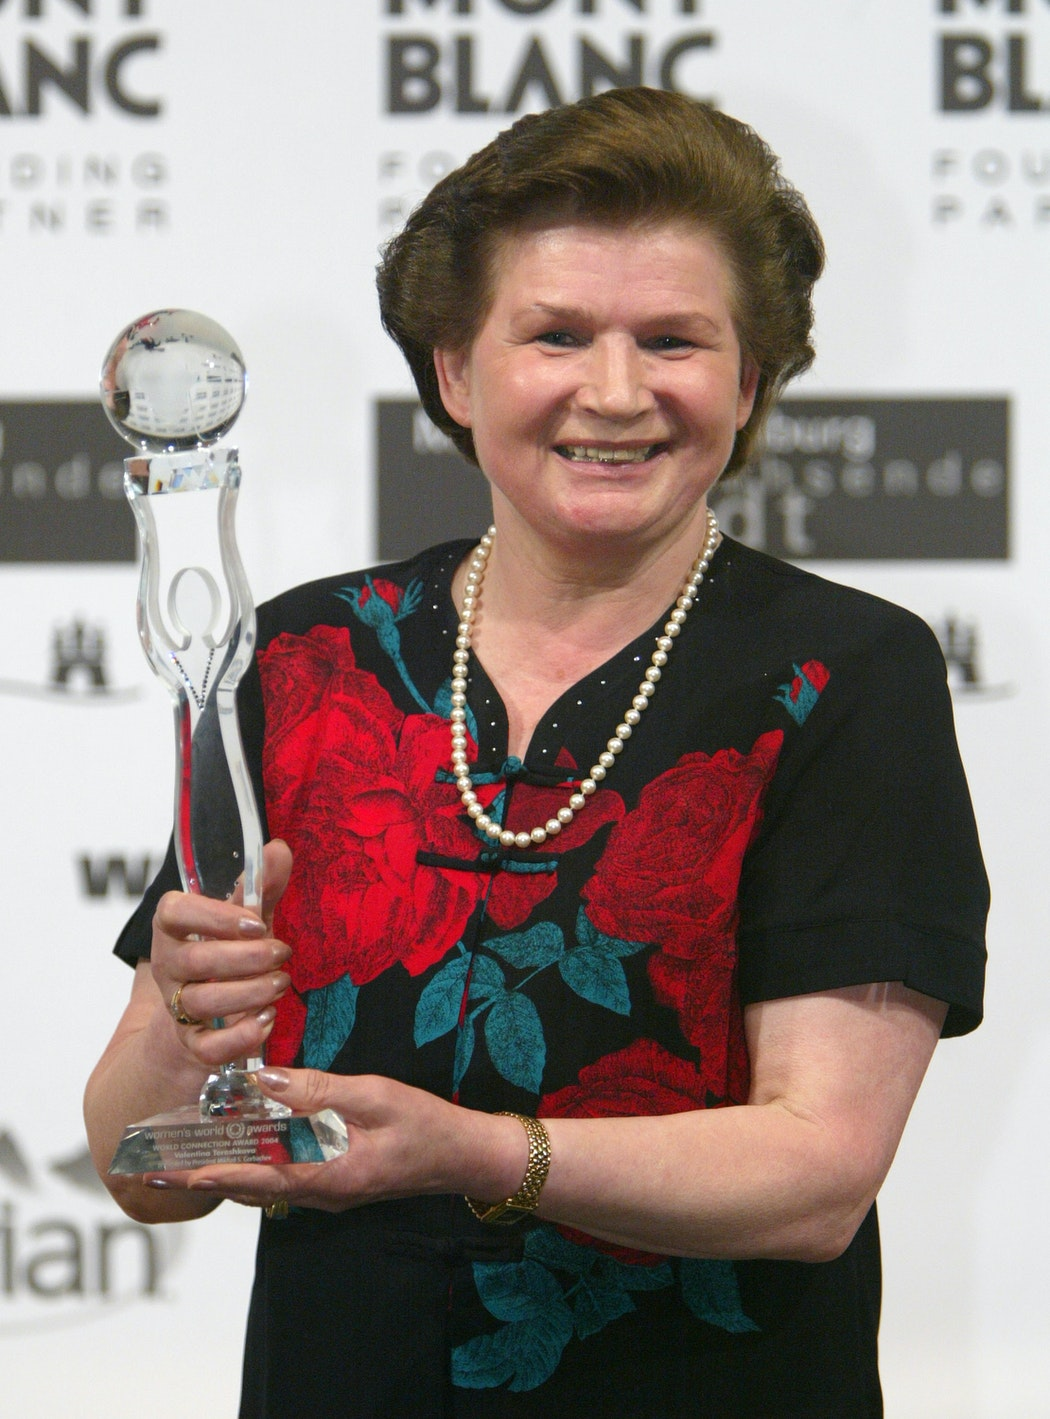 Former Russian astronaut Valentina Tereshkova received a World Connection Award at the Women's World Award at Congress Center June 9, 2004 in Hamburg, Germany.